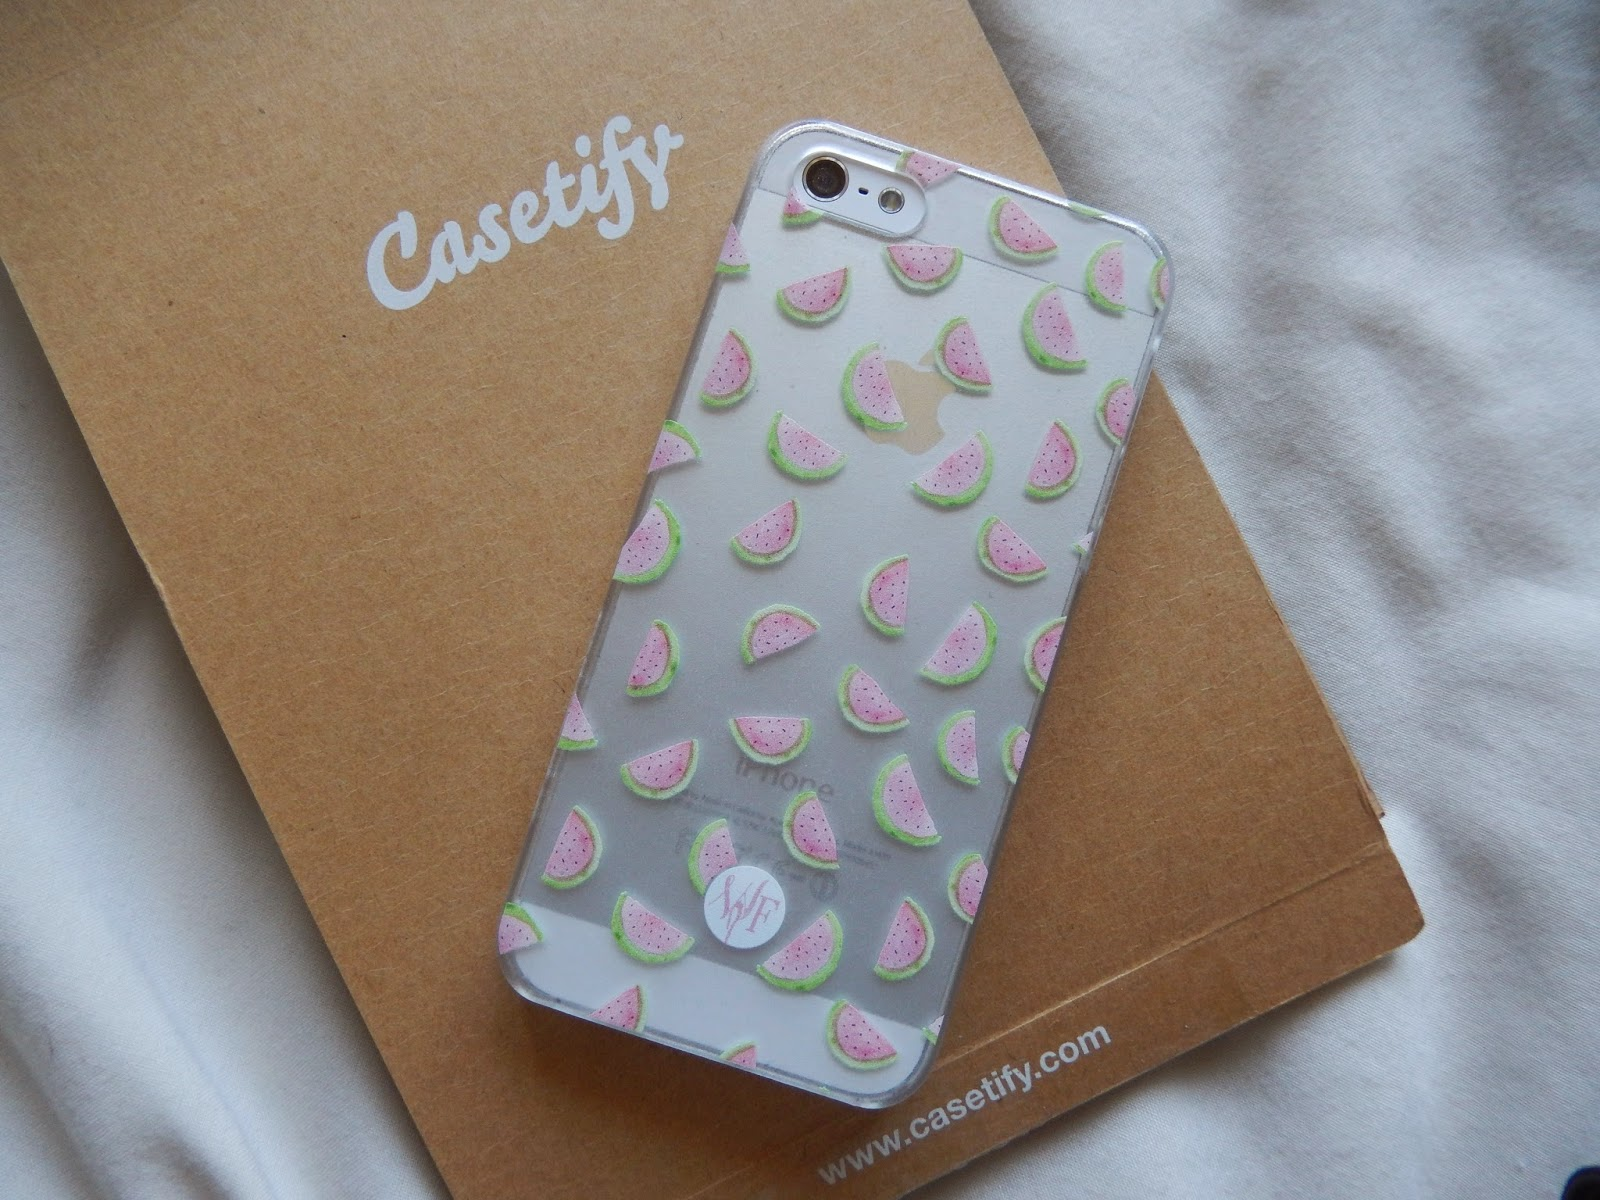 Sammi Jackson - Casetify x Wonderforest Watermelon Phonecase